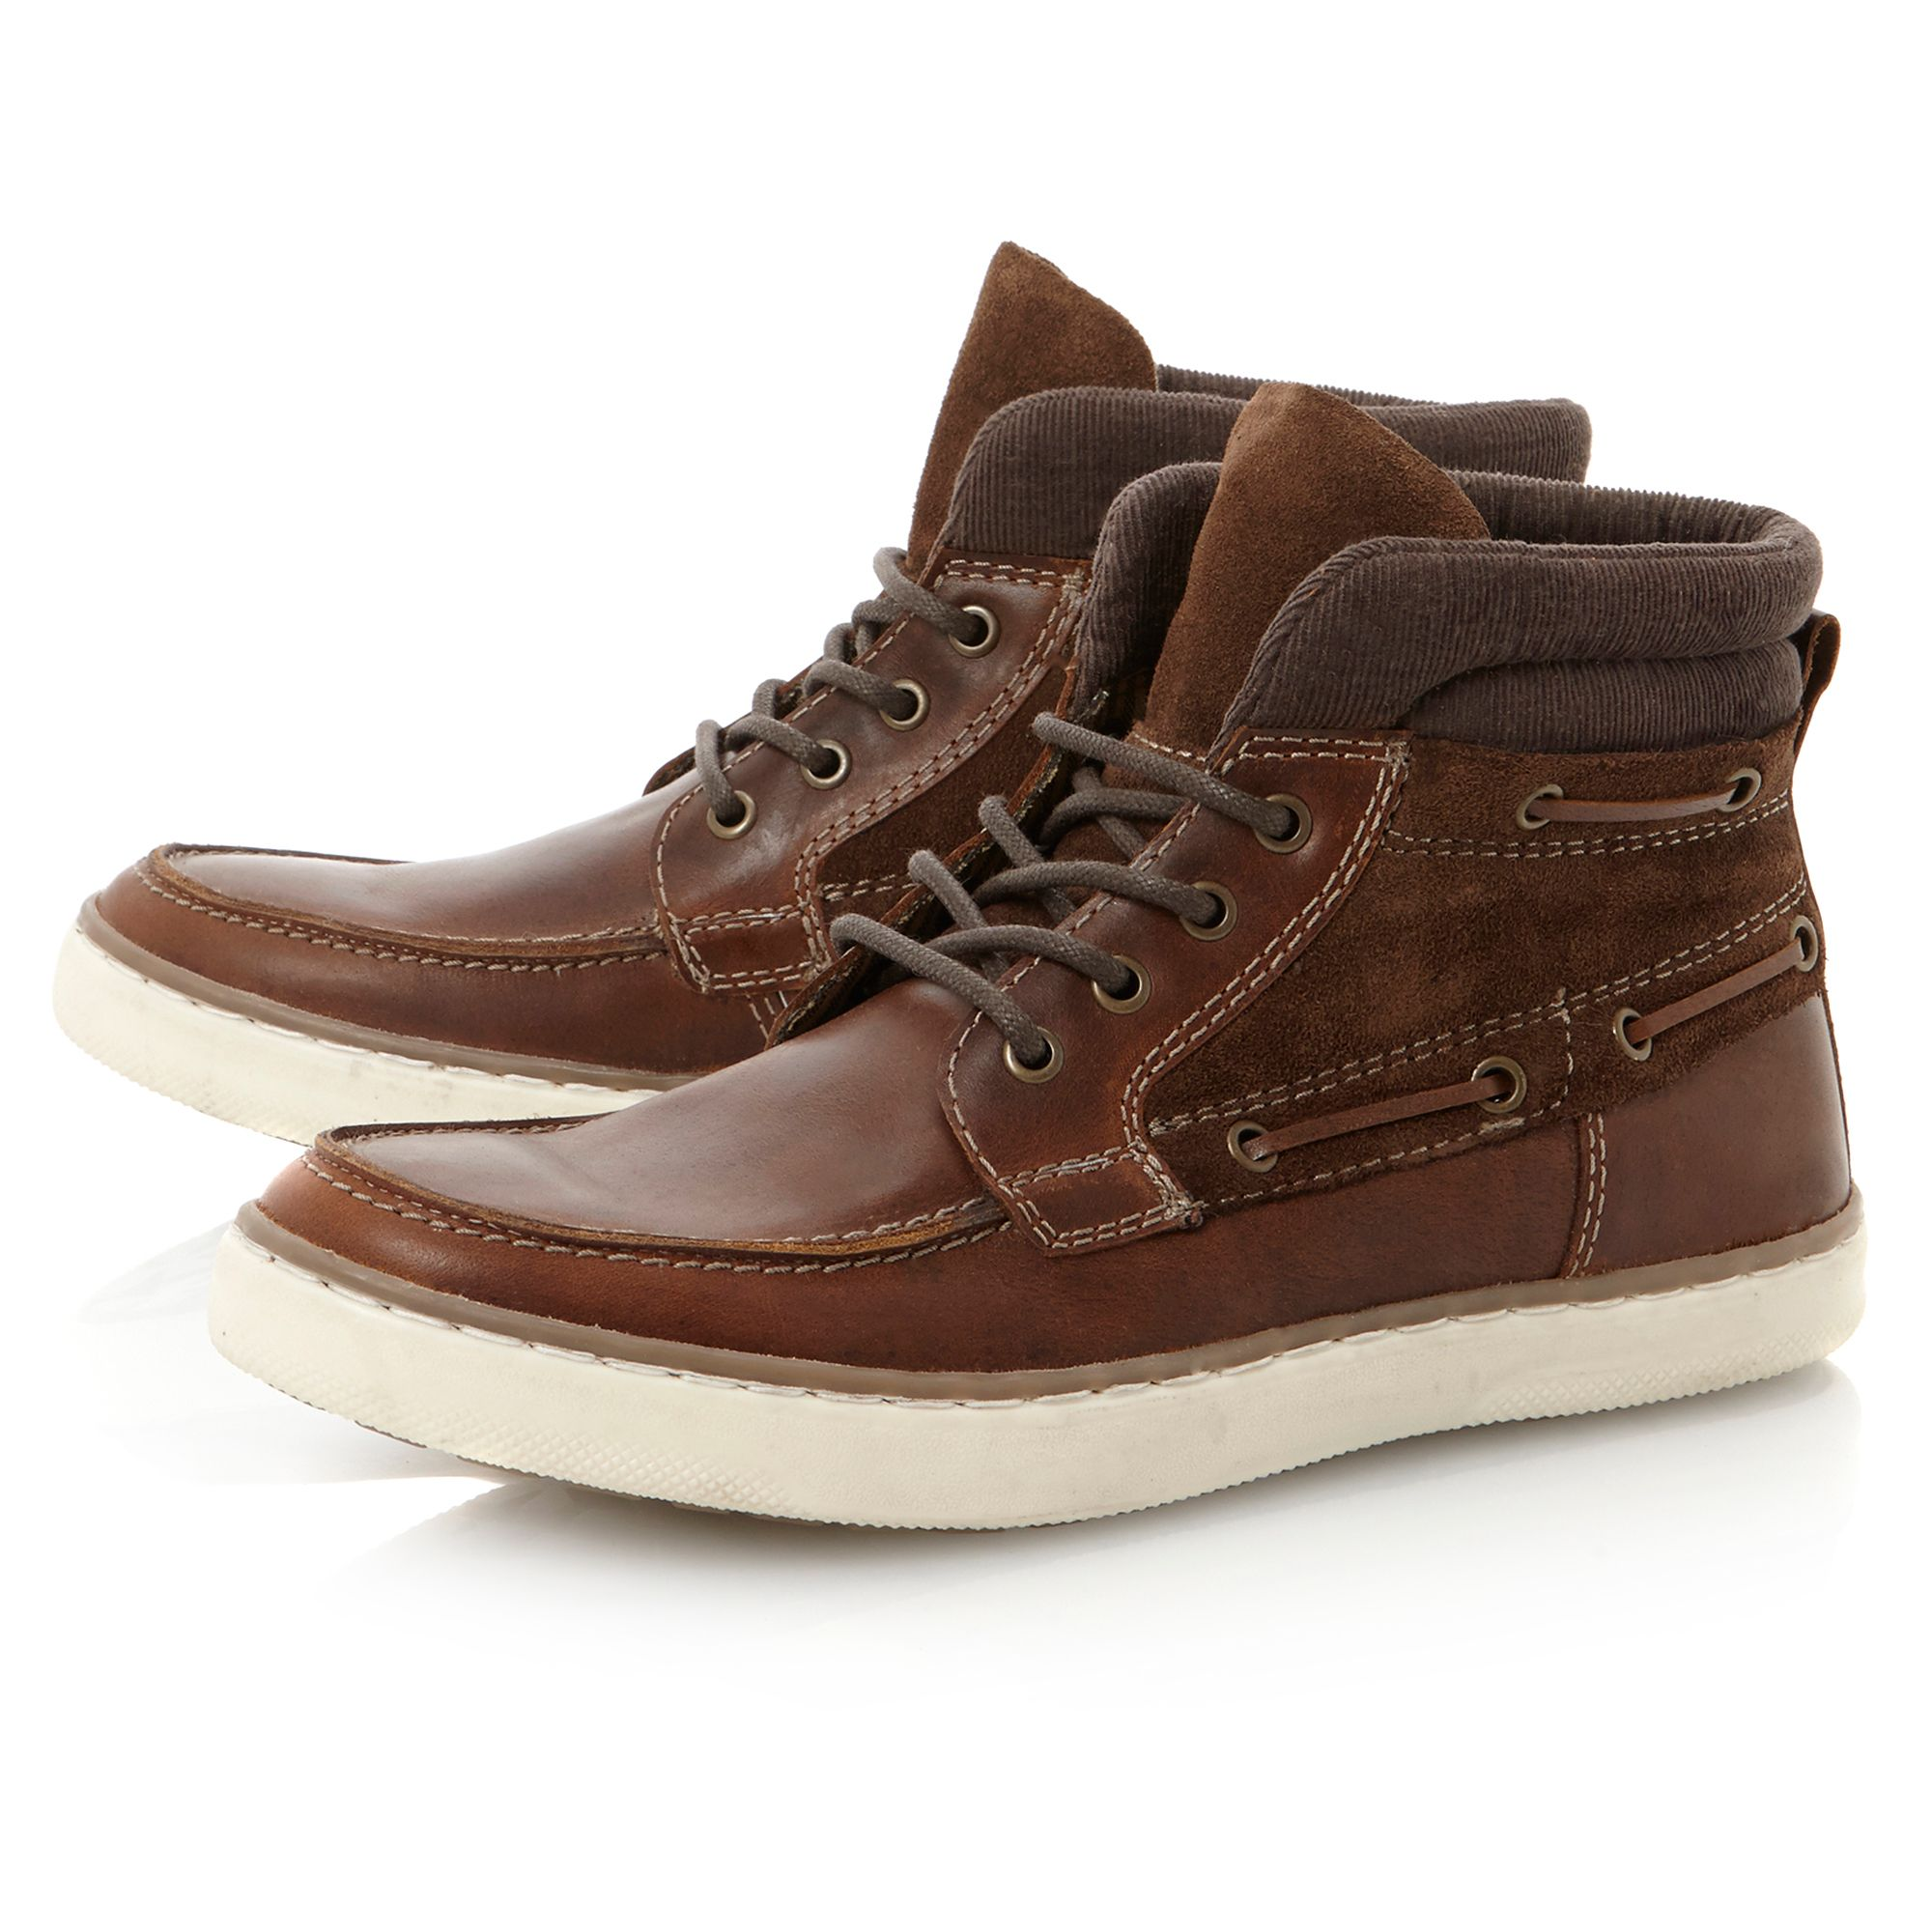 Chiltern apron cup sole boot